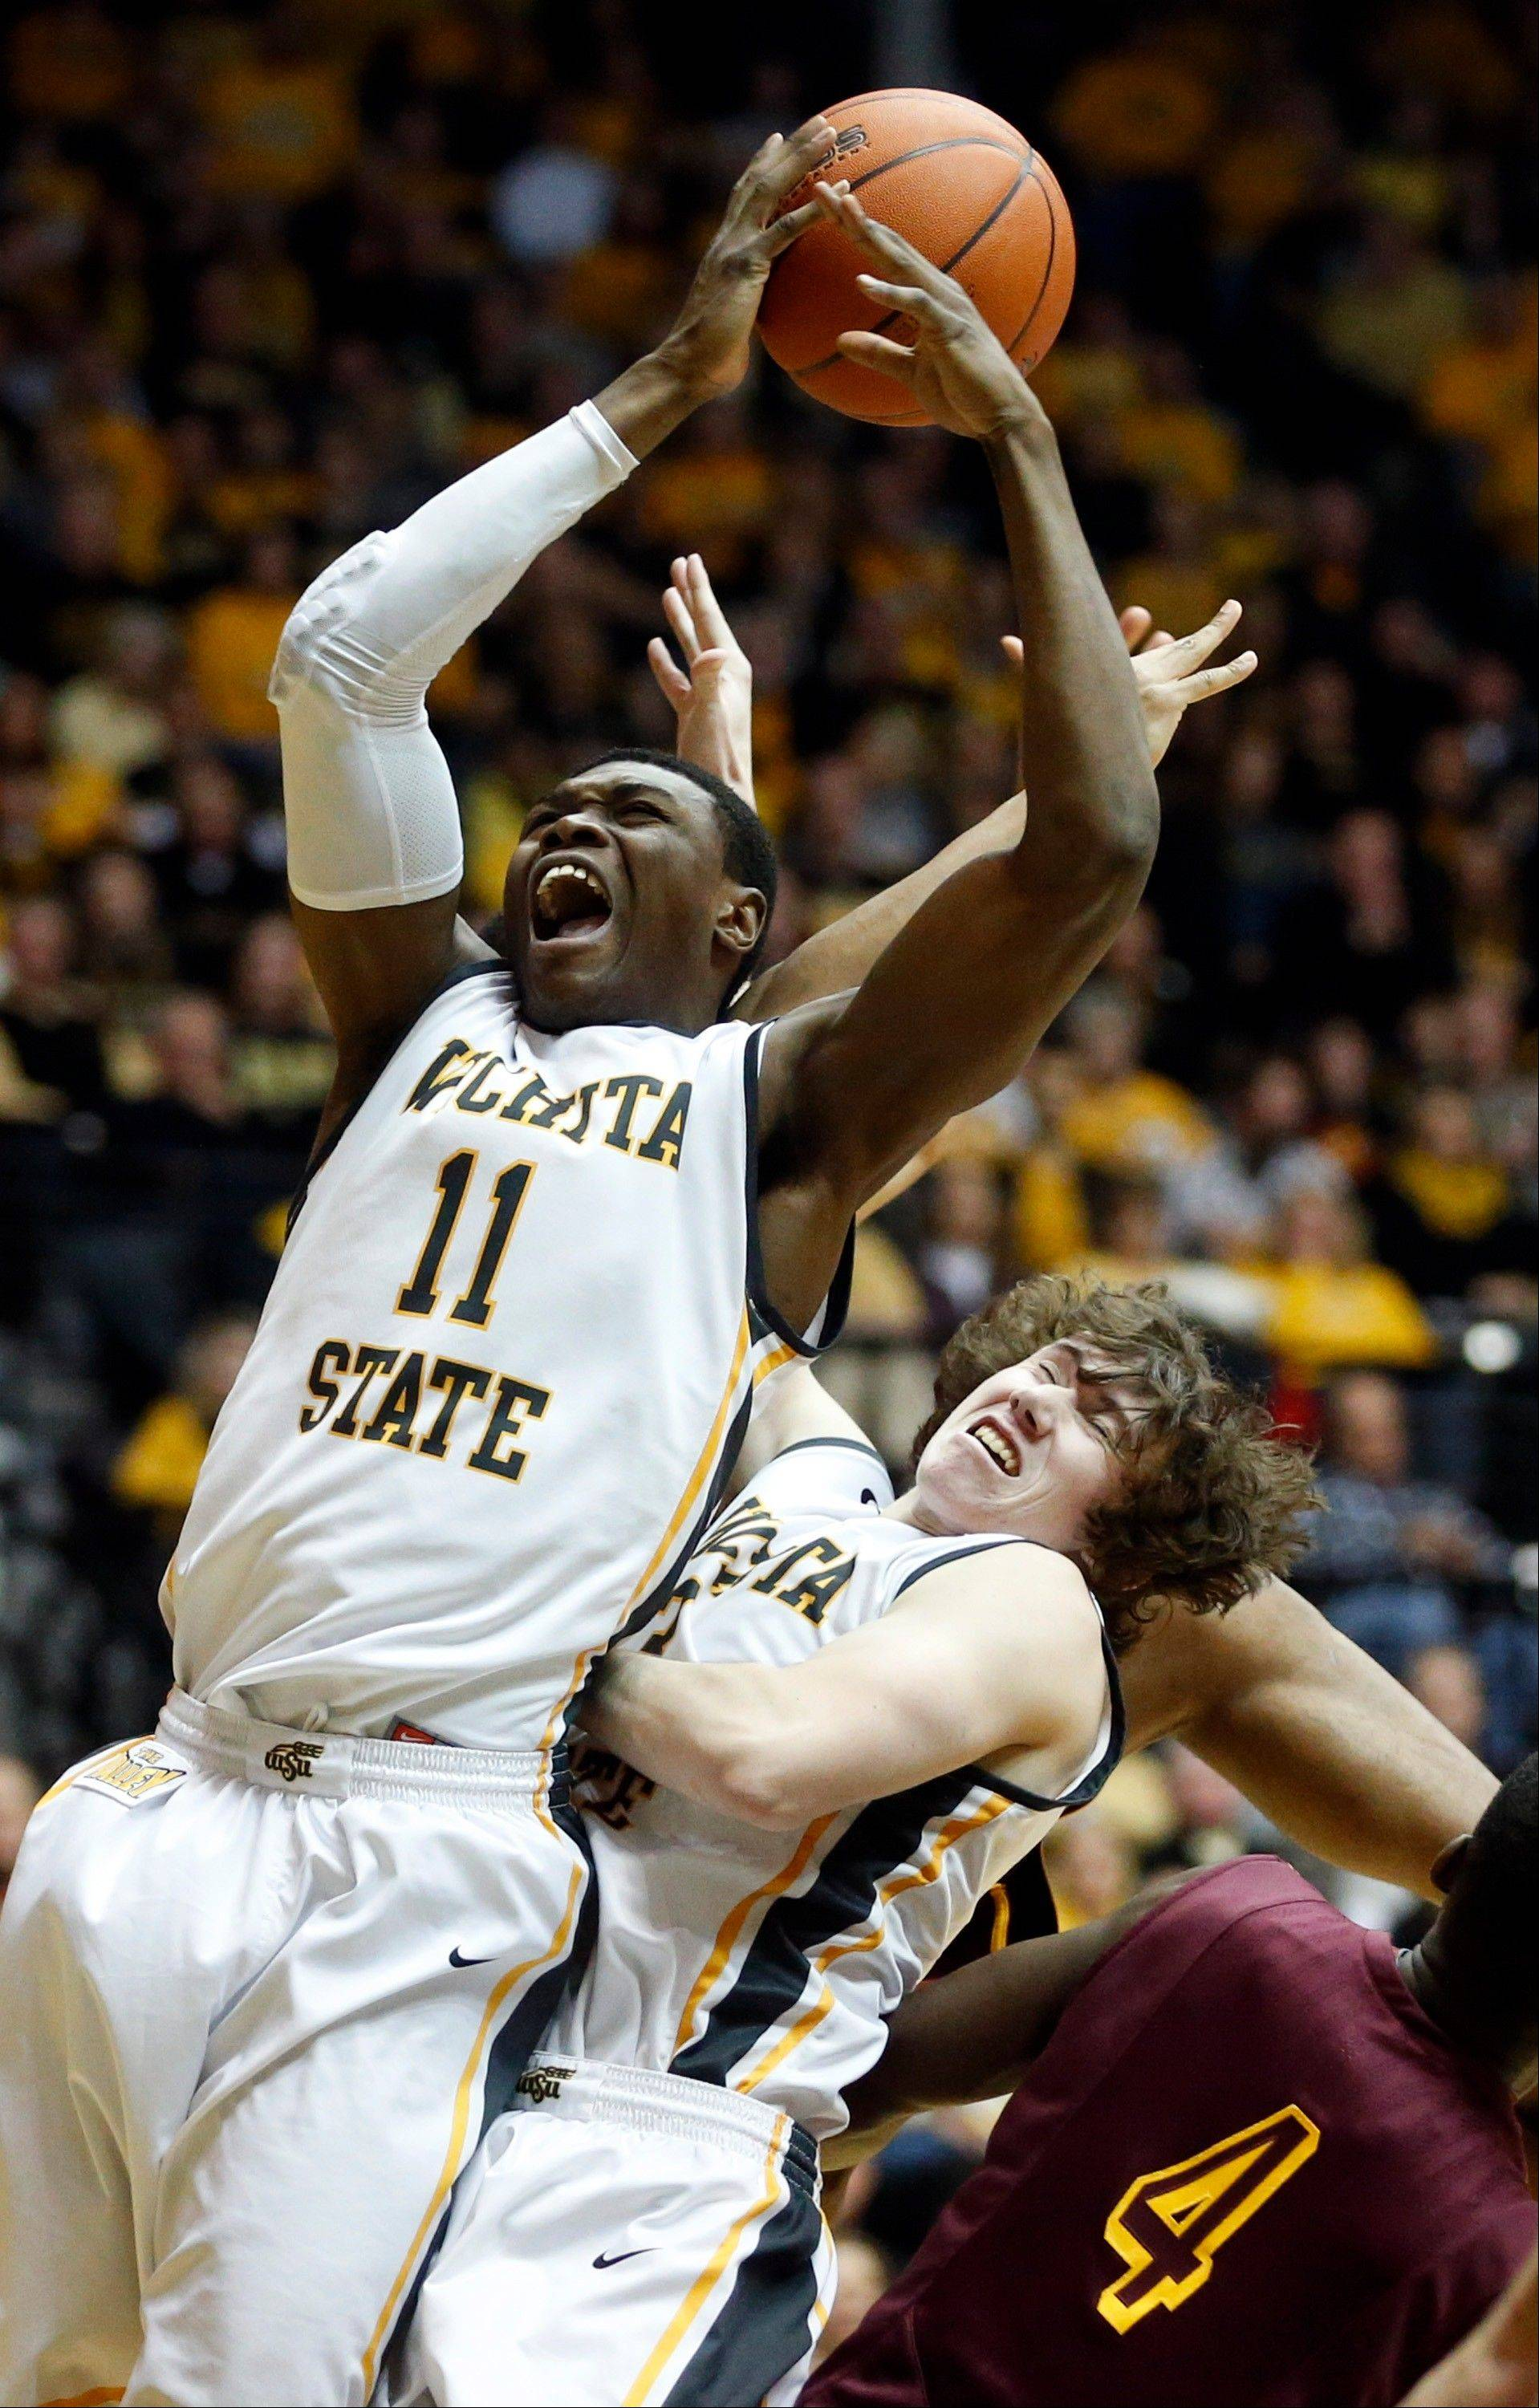 Wichita State forward Cleanthony Early (11) and Evan Wessel (3) go up for a rebound against Loyola during Tuesday night�s game in Wichita, Kan.